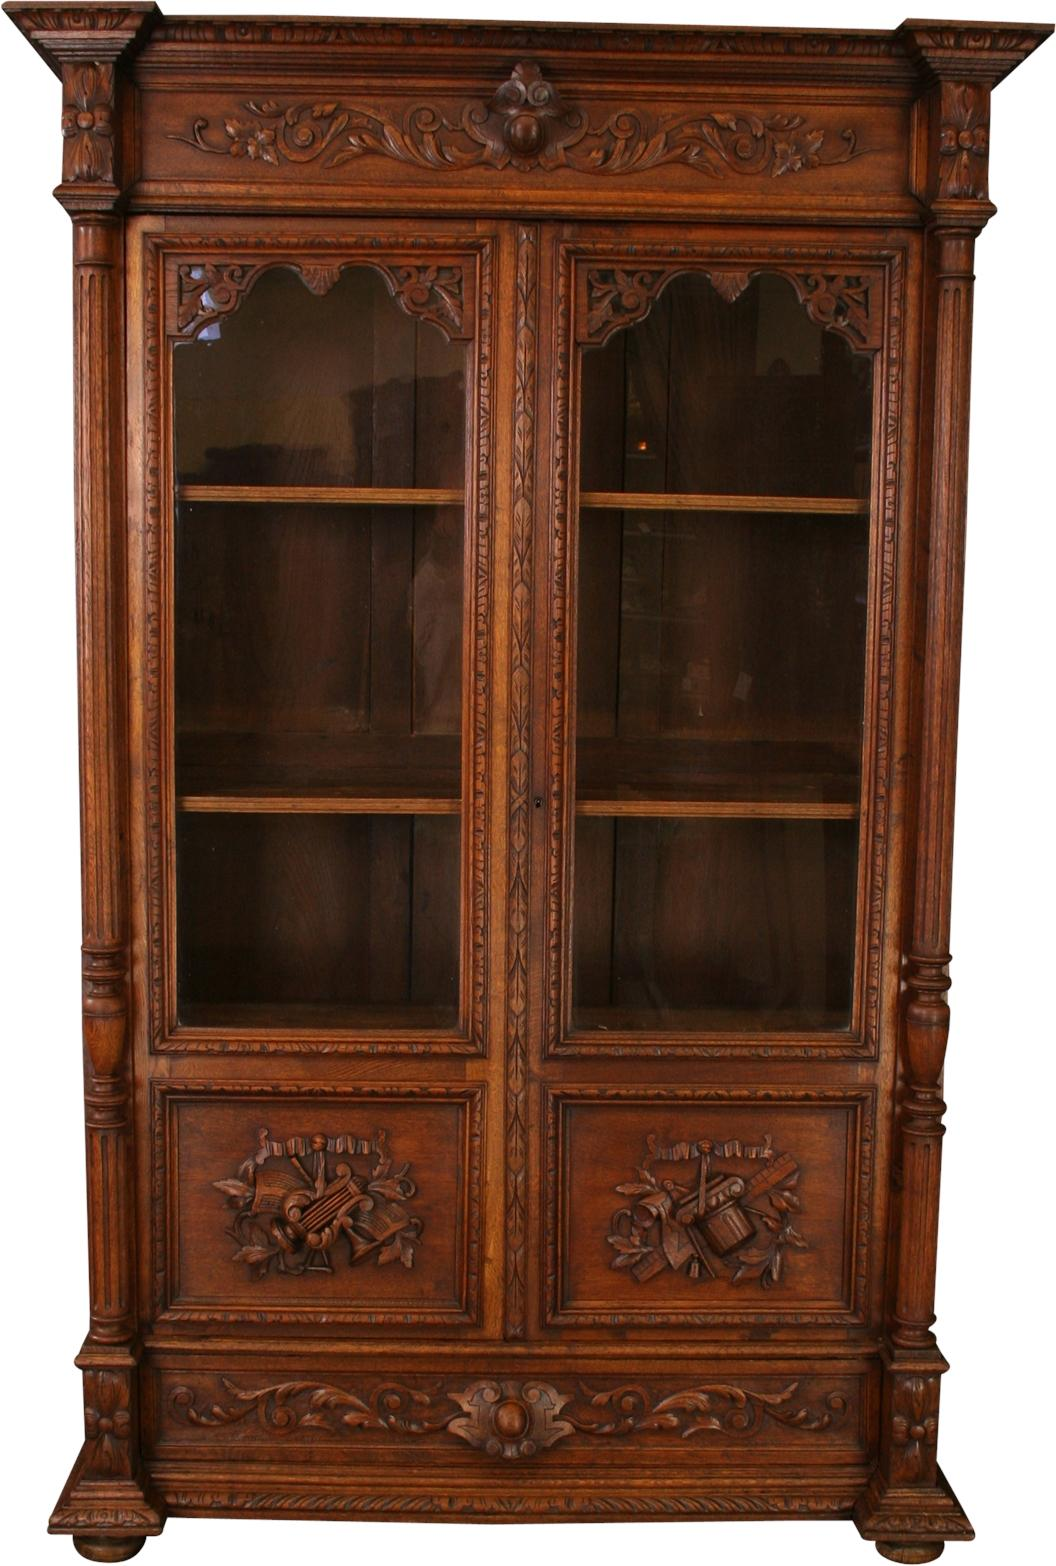 1566 #6C361E 1900s French Renaissance Carved Bookcase Chairish wallpaper 3ft French Doors 46651056